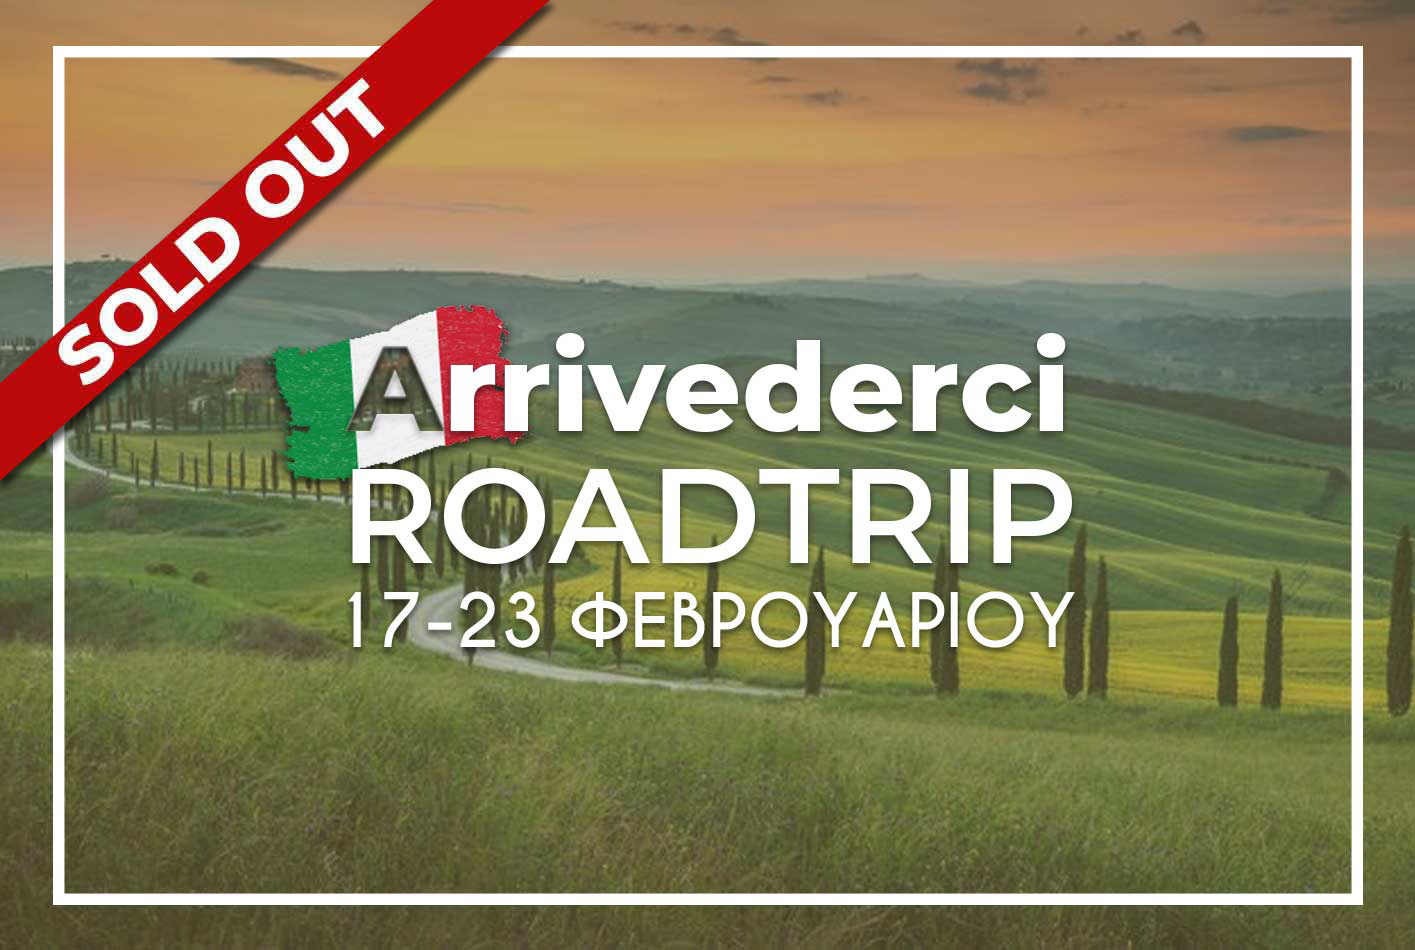 Arrivederci Sold Out